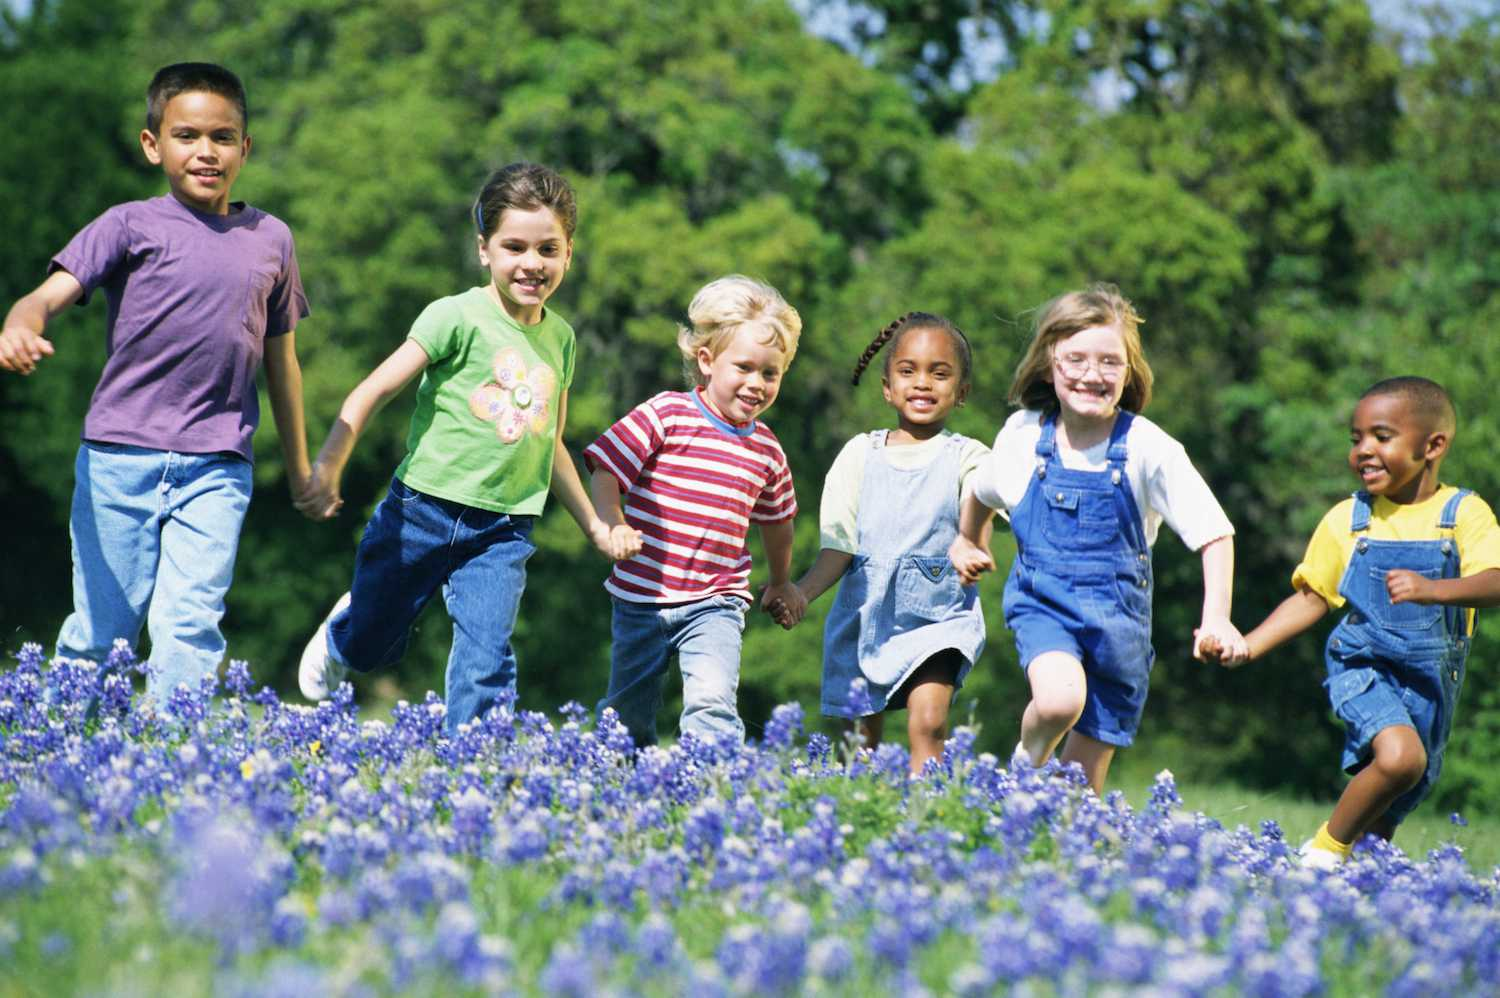 Kids Playing Outside in Flowers